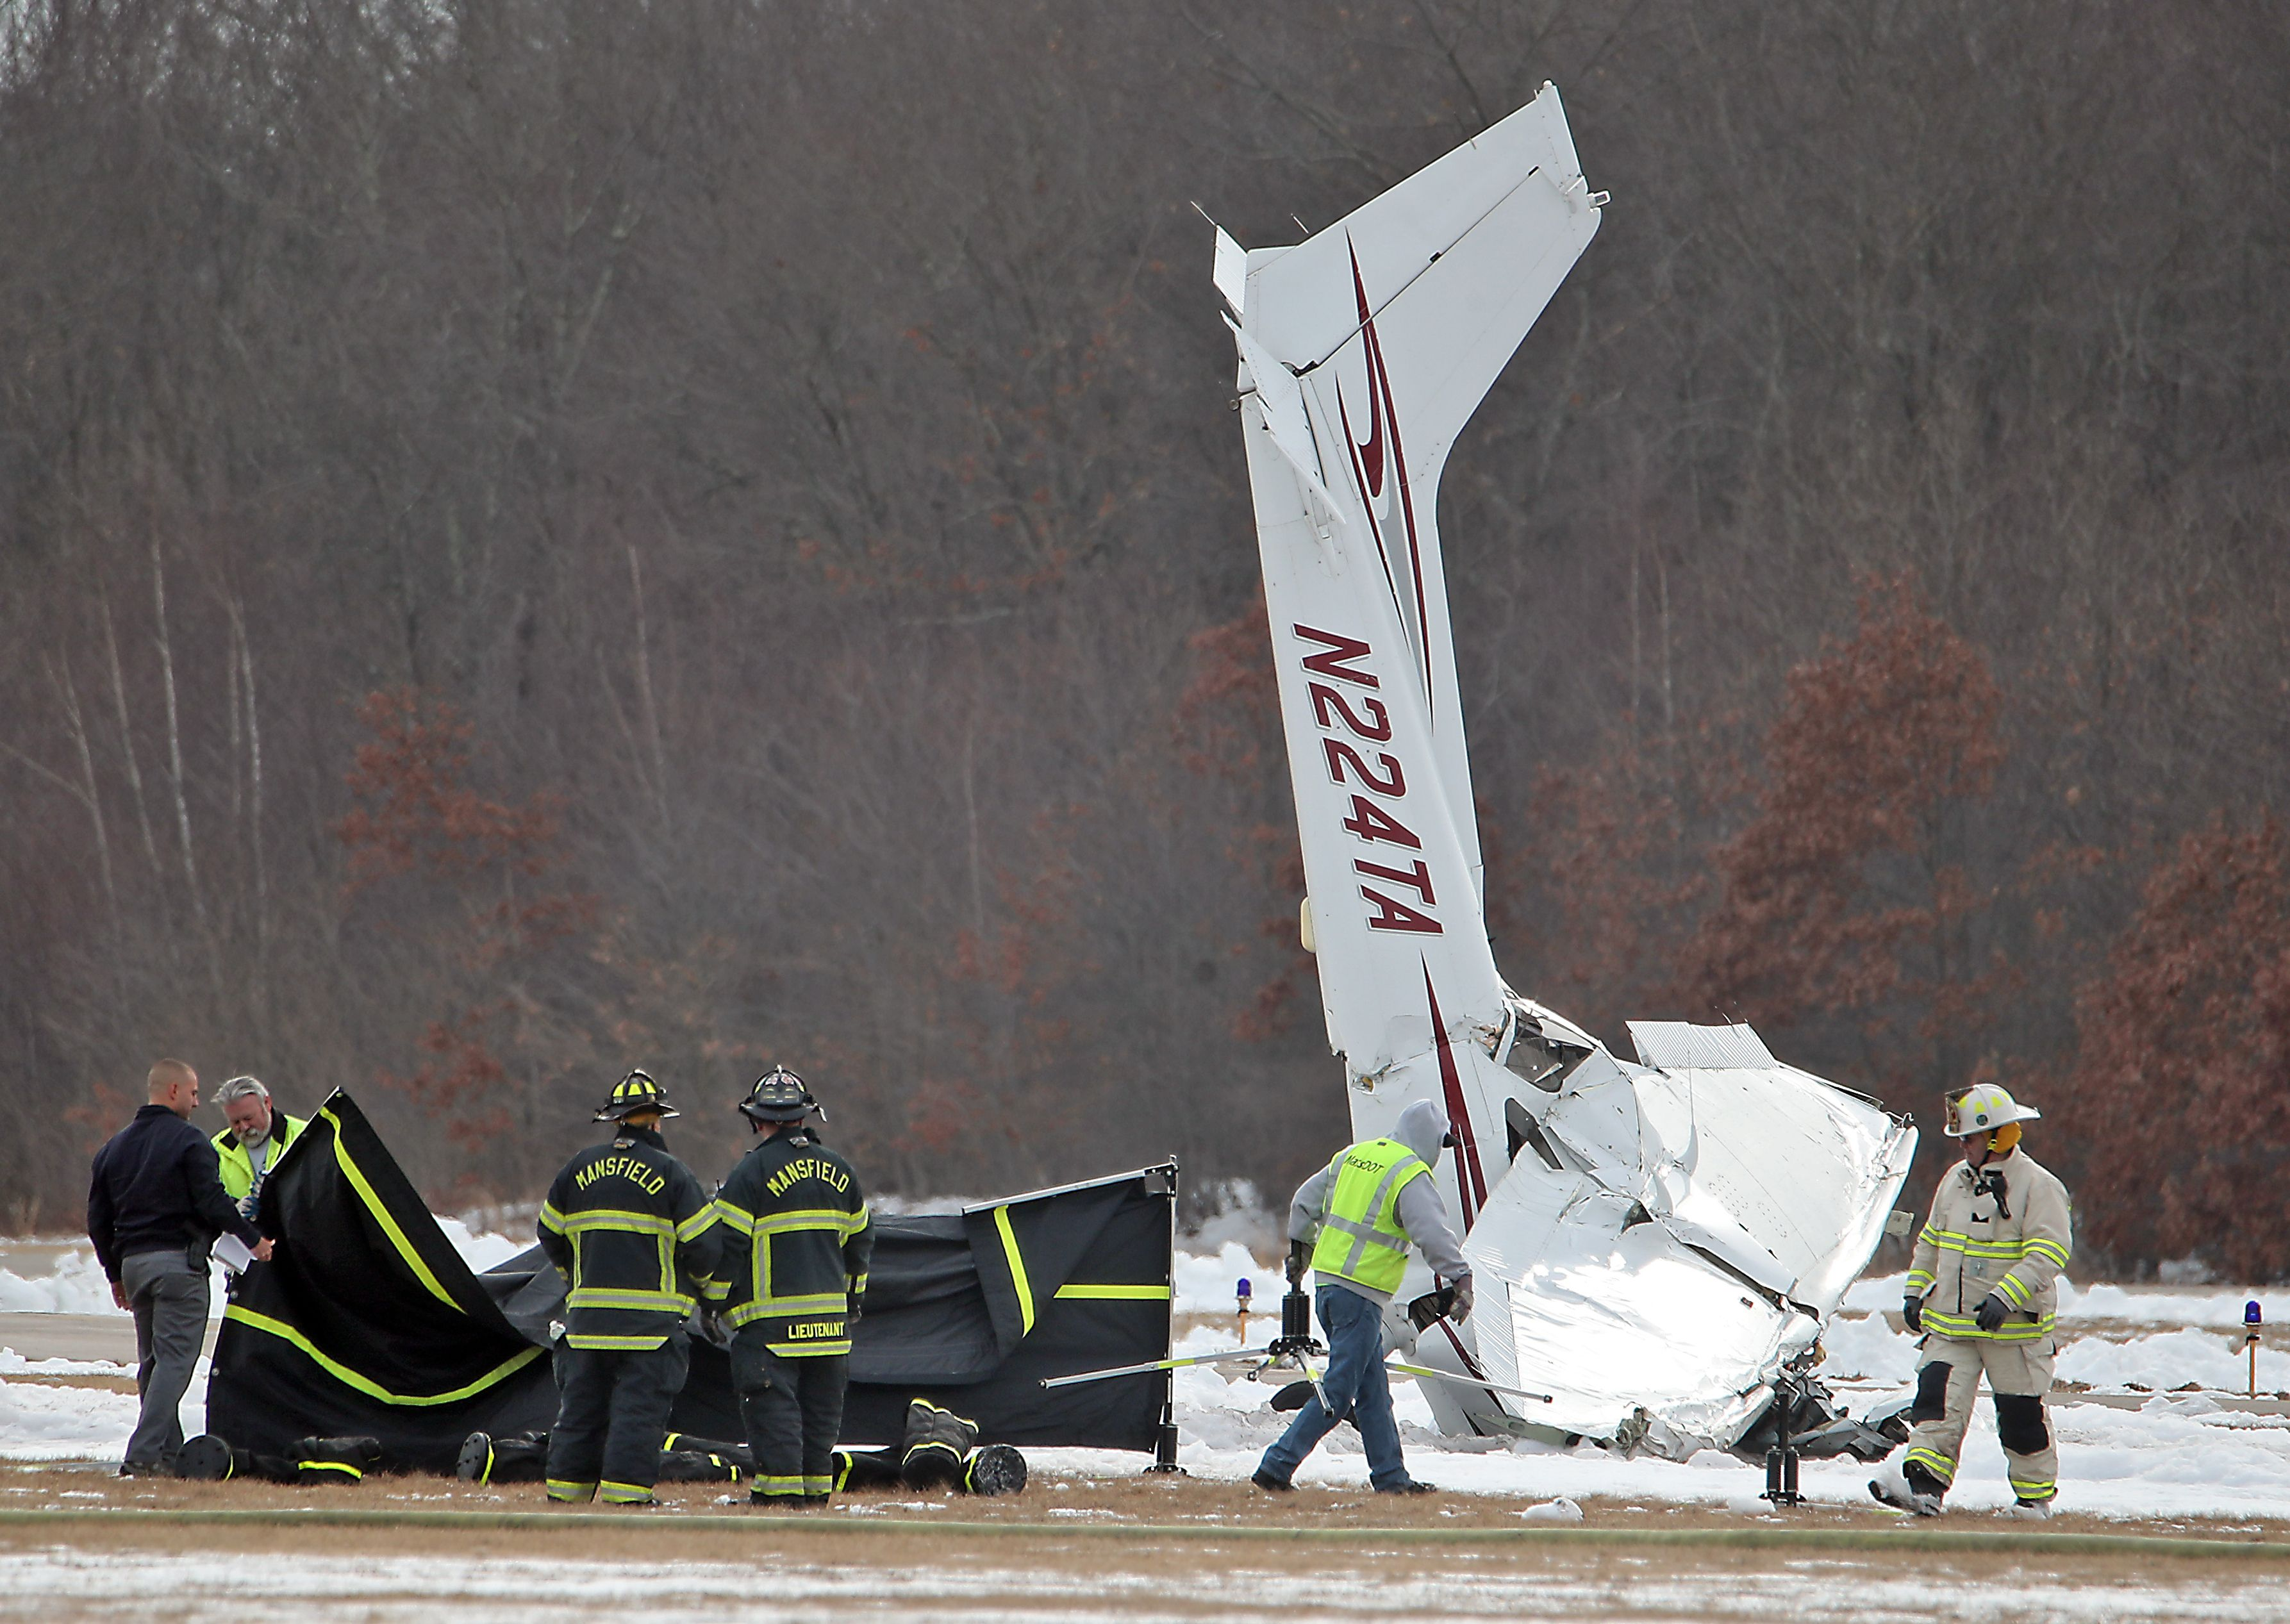 2 dead after small plane crashes in Mansfield - The Boston Globe